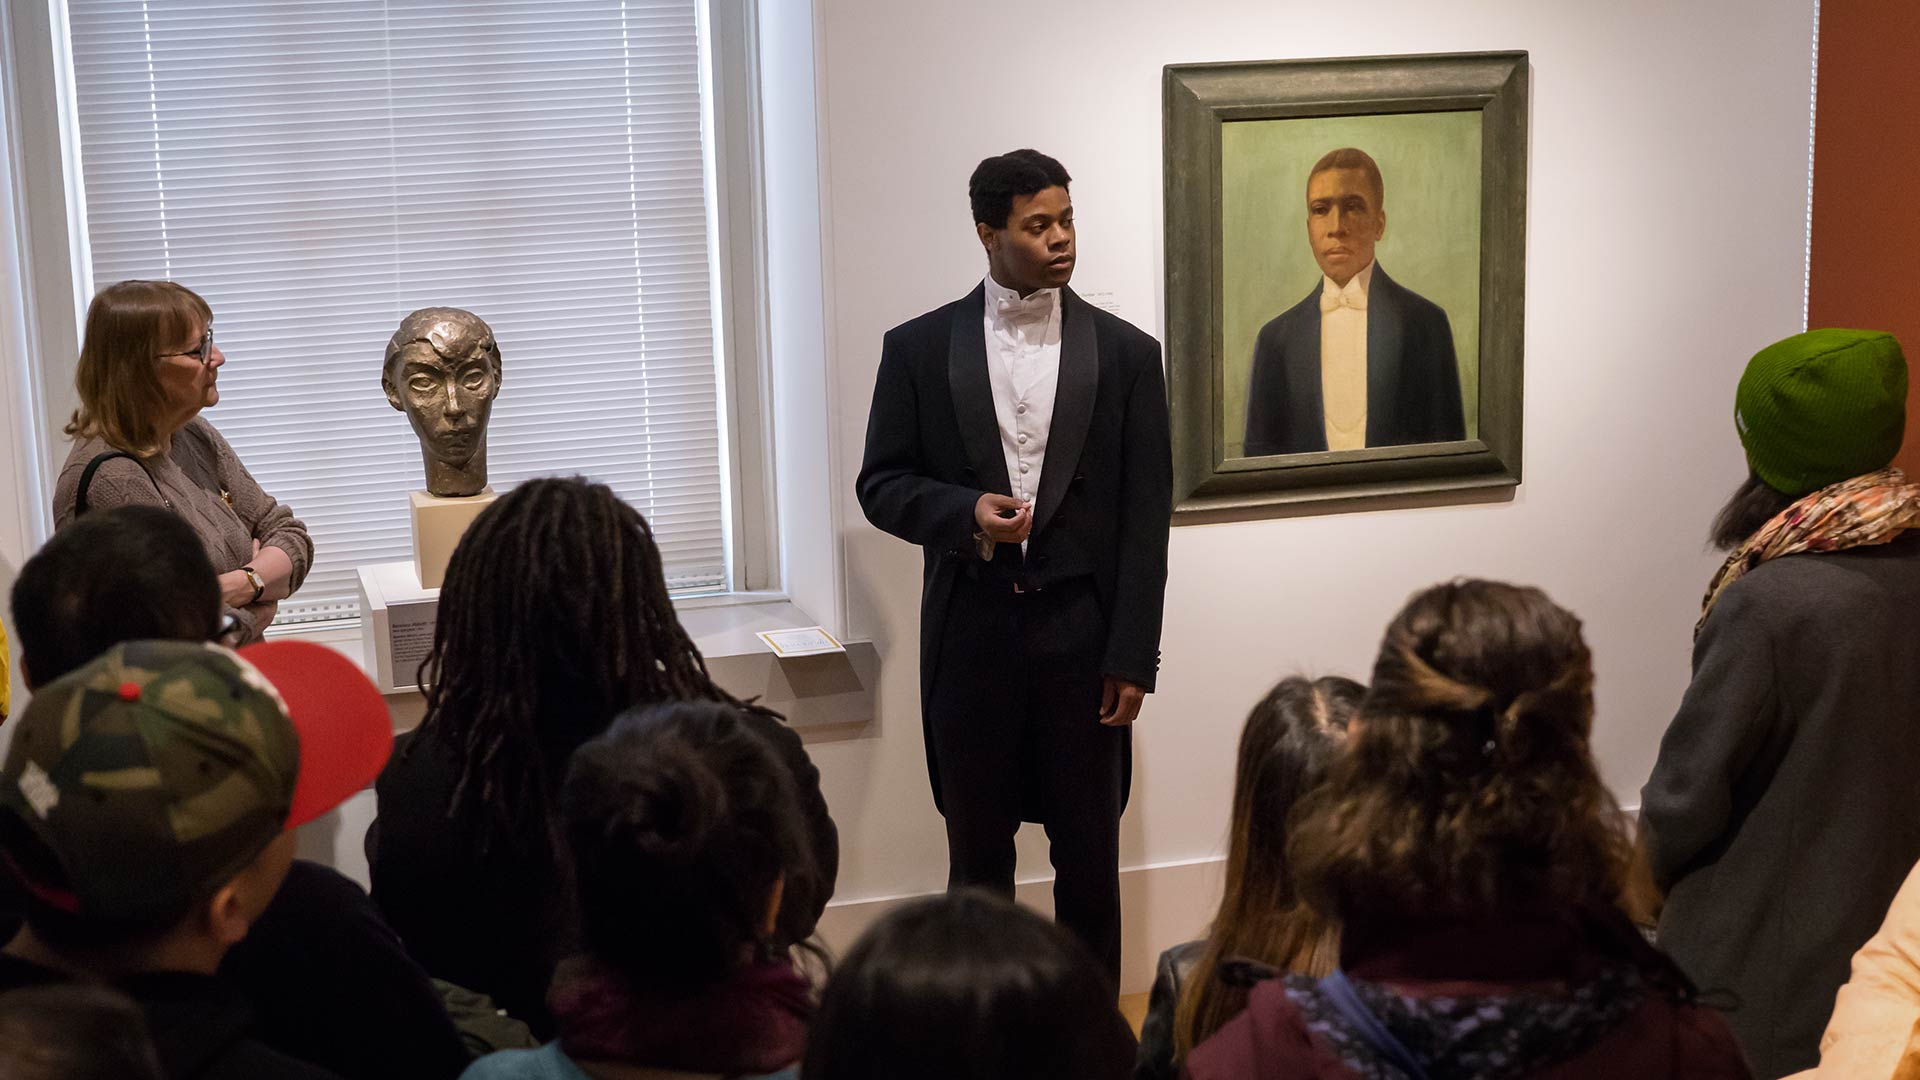 Students Bring Historical Figures to Life at Portrait Gallery